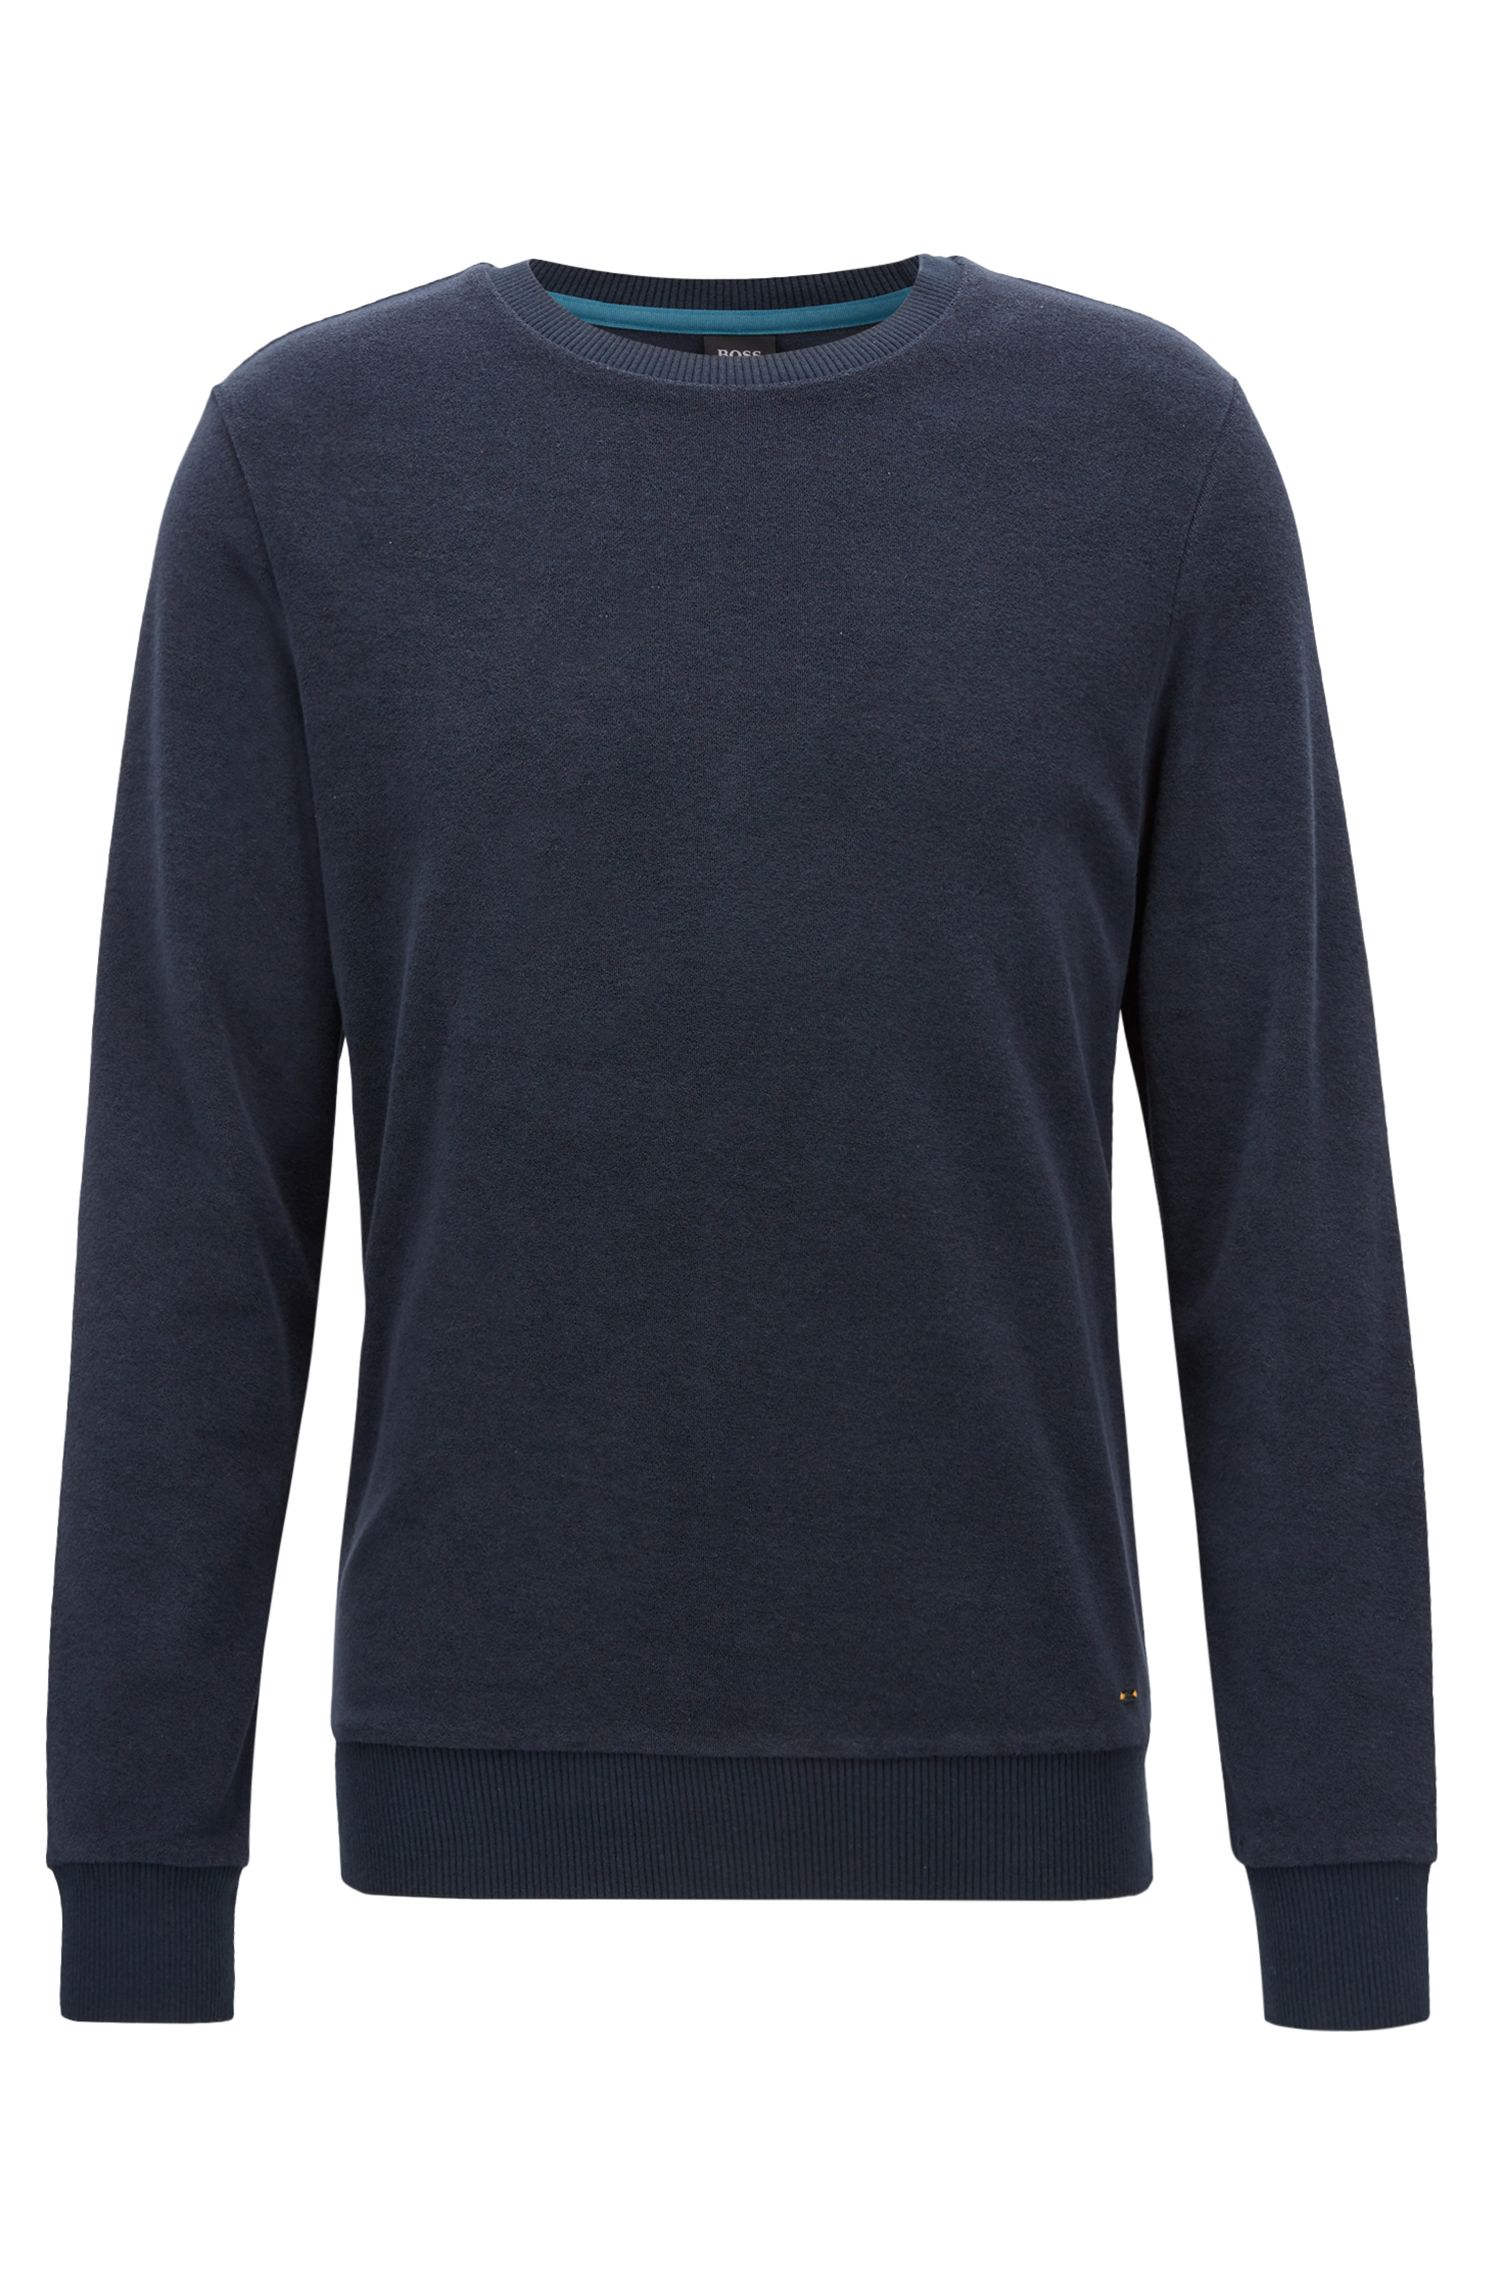 Regular-fit long-sleeved T-shirt in toweling jersey, Dark Blue